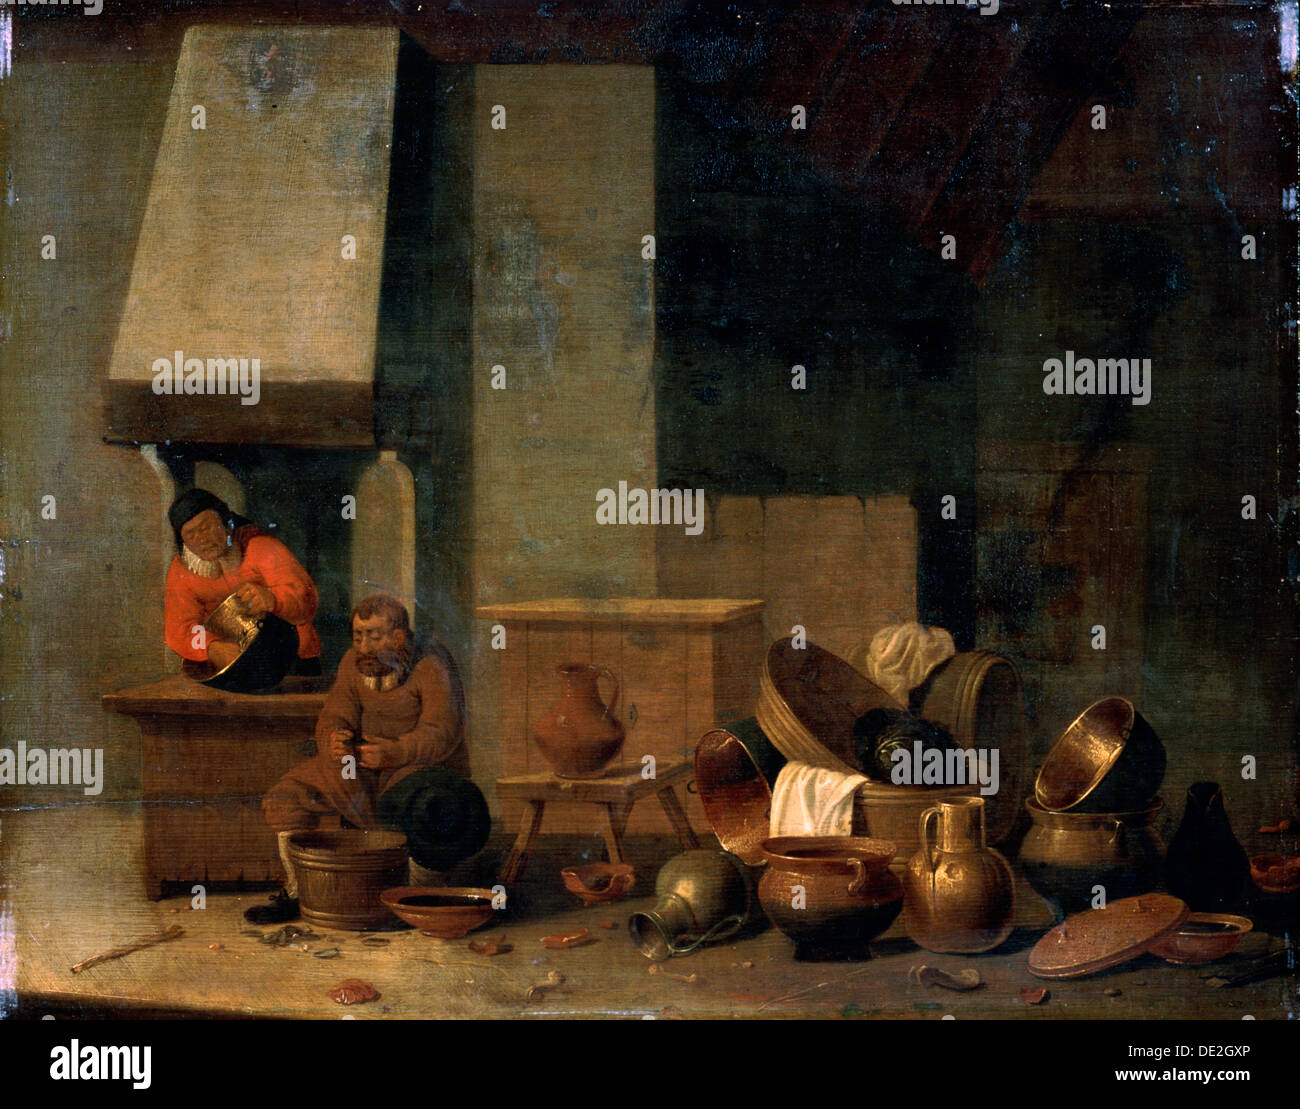 'The Kitchen', 17th century.  Artist: Anon - Stock Image